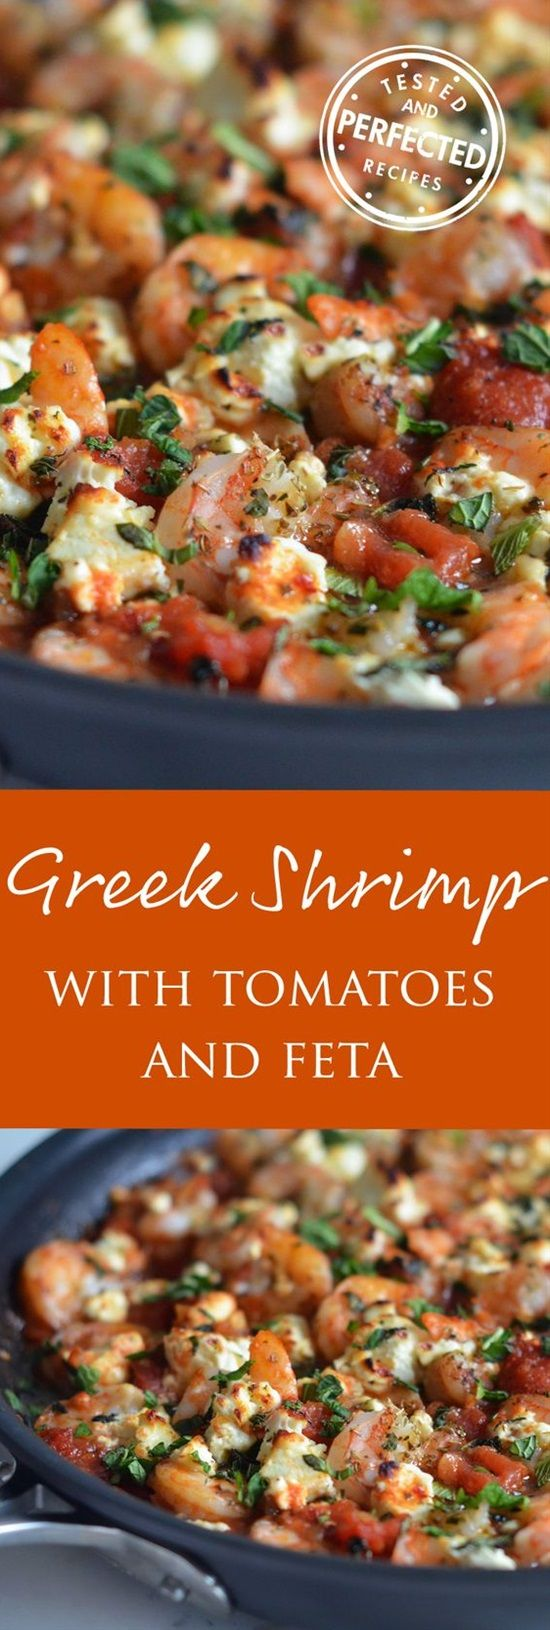 There are hundreds of tasty ways to cook shrimps, including shrimp scampi, pasta with shrimp, shrimp ceviche, and many other delicious ways in which you can add shrimps to your favorite recipes. So If you are in love with shrimps, then you can eat them everyday and still enjoy your meal. Shrimp recipes are usually easy to cook and perfect for the busy weeknights, when you hope to have a delicious meal, but don't want to spend hours in kitchen. If you are a shrimp lover, then these 25 yum...